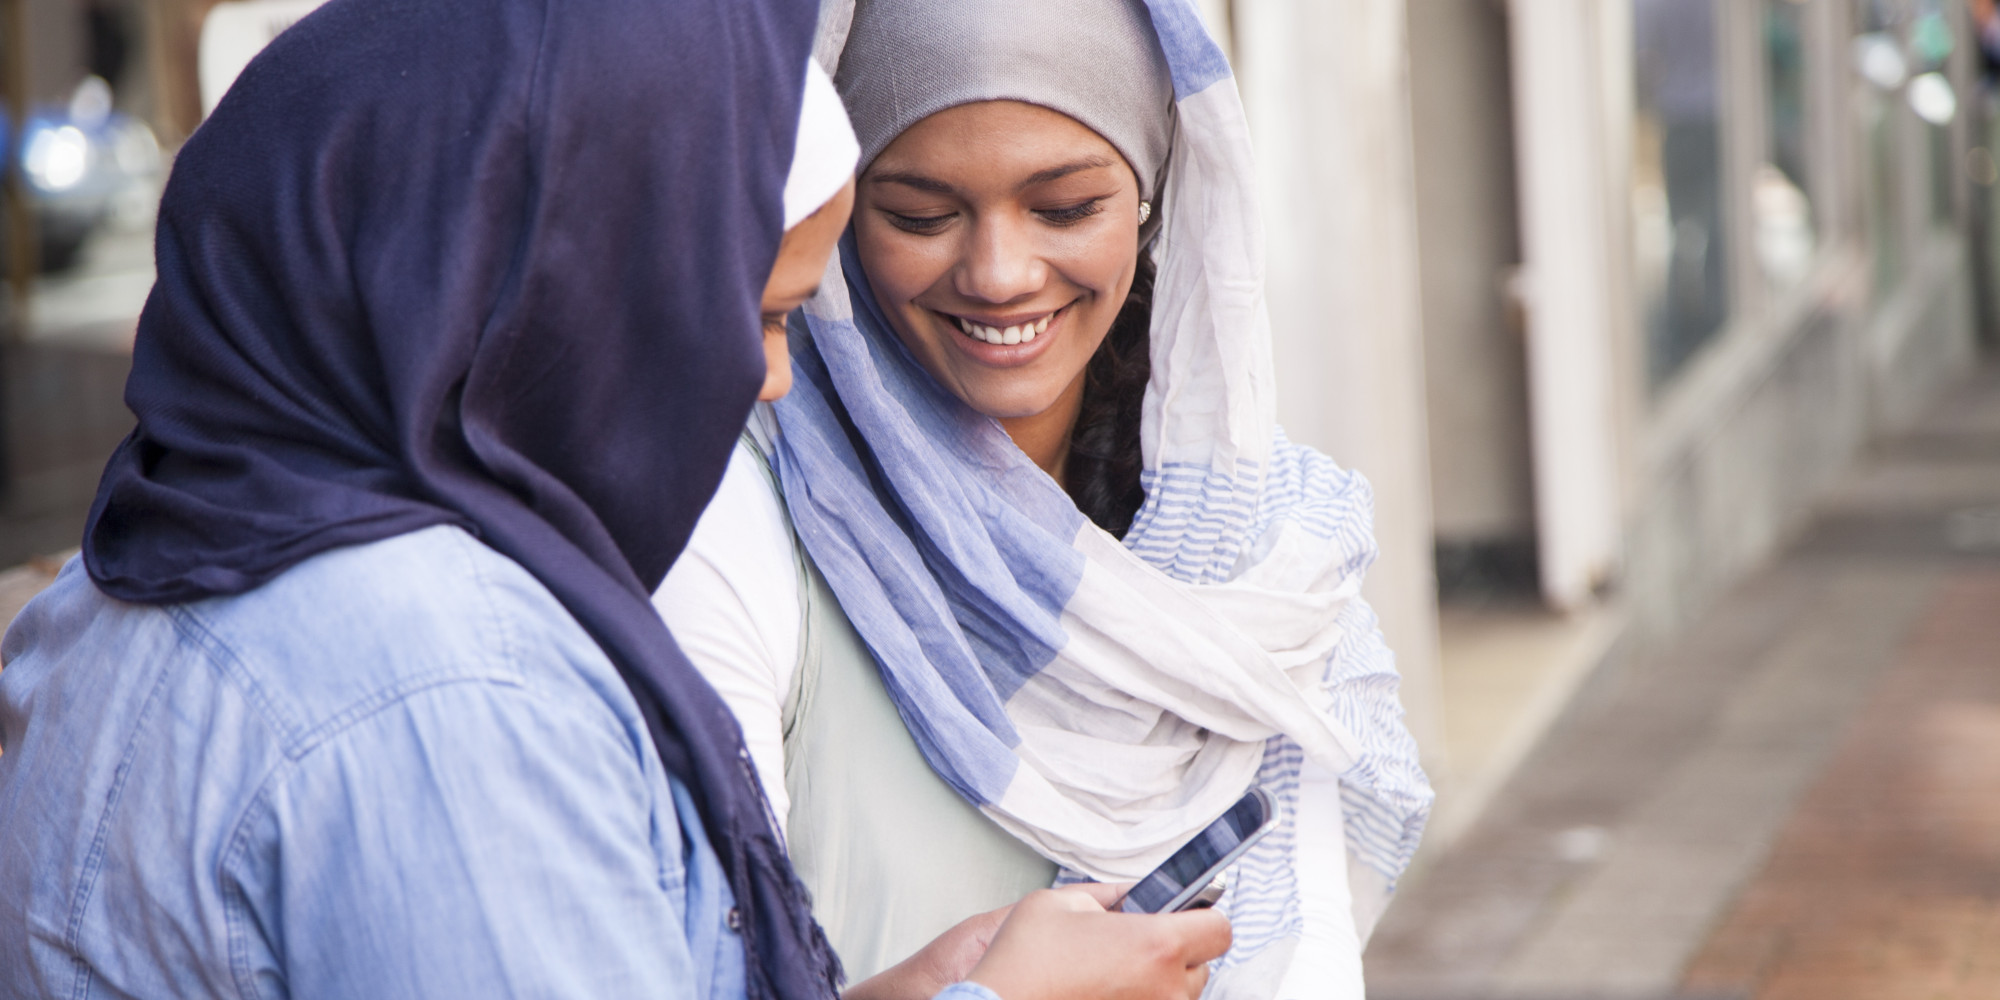 copiapo muslim girl personals If you have found an attractive muslim girl whom you want to ask out on a date, these 10 tips for dating muslim girls will really help you although girls do have a lot of common characteristics, their natures are certainly influenced by their cultures and it would help you to know what to do.